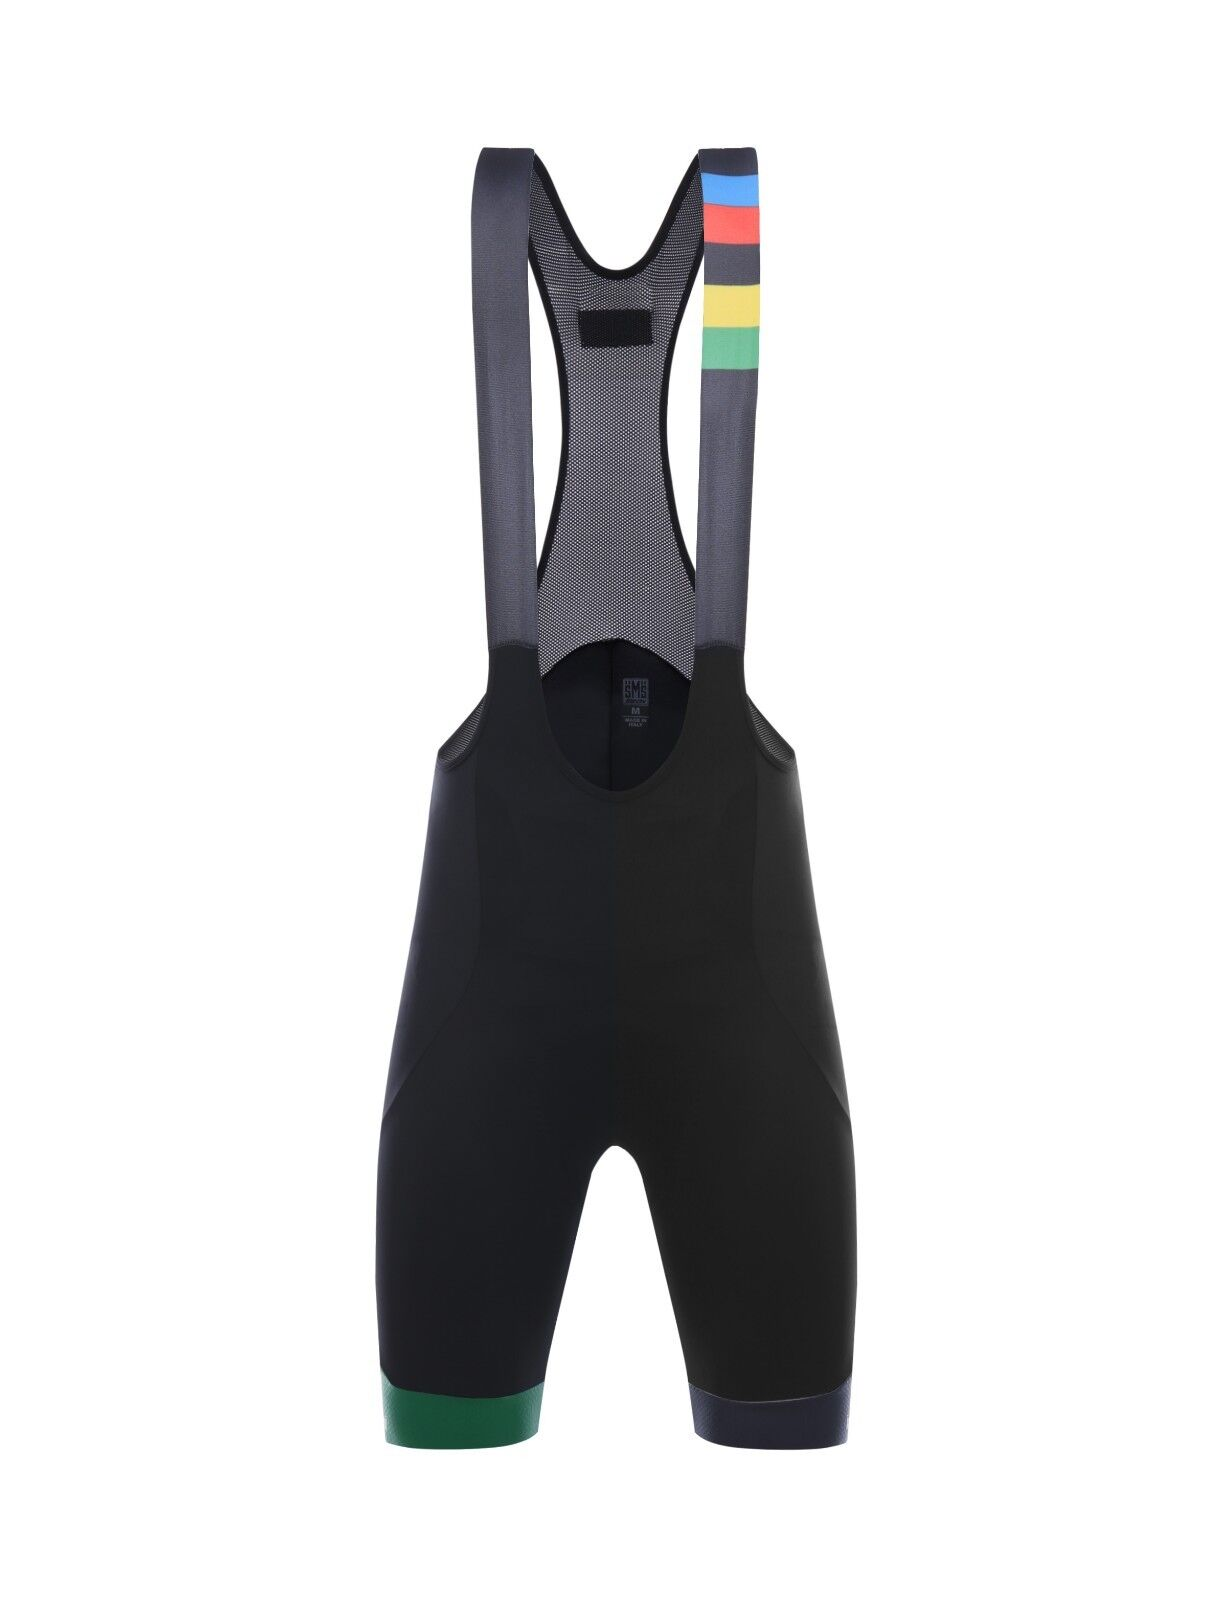 2018 UCI TRIPLE CROWN CYCLING  Bib Shorts - Made in  by Santini  high quality genuine